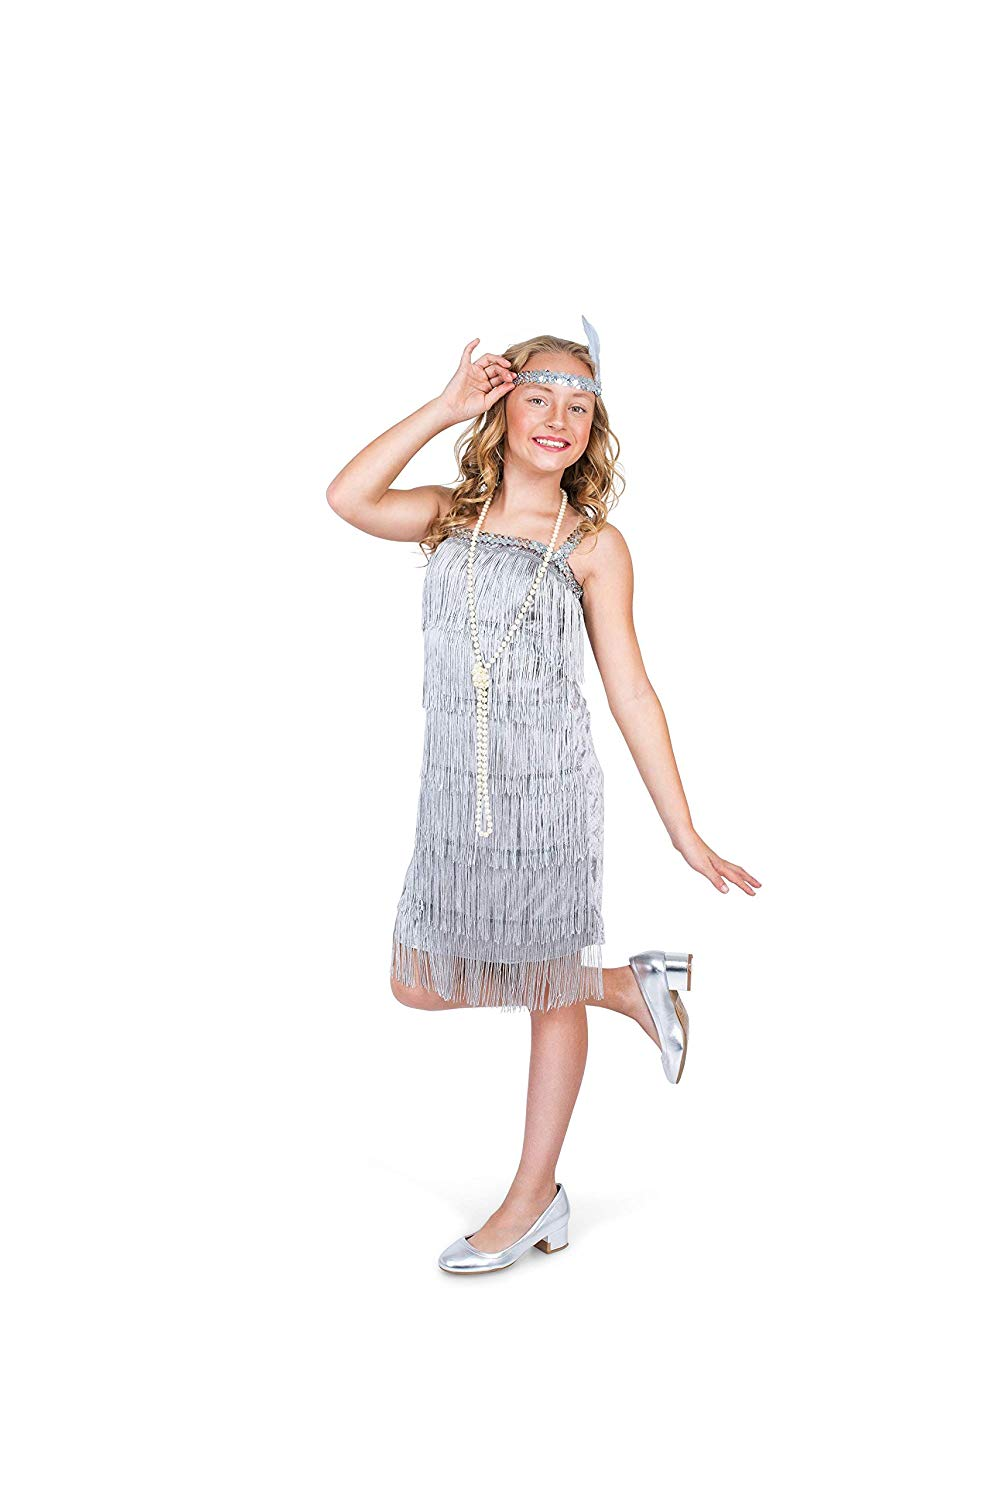 a10ec3d7 Get Quotations · Karnival Costumes Flapper Costume Girls, 20s Dress with  Headband, Kids, Silver